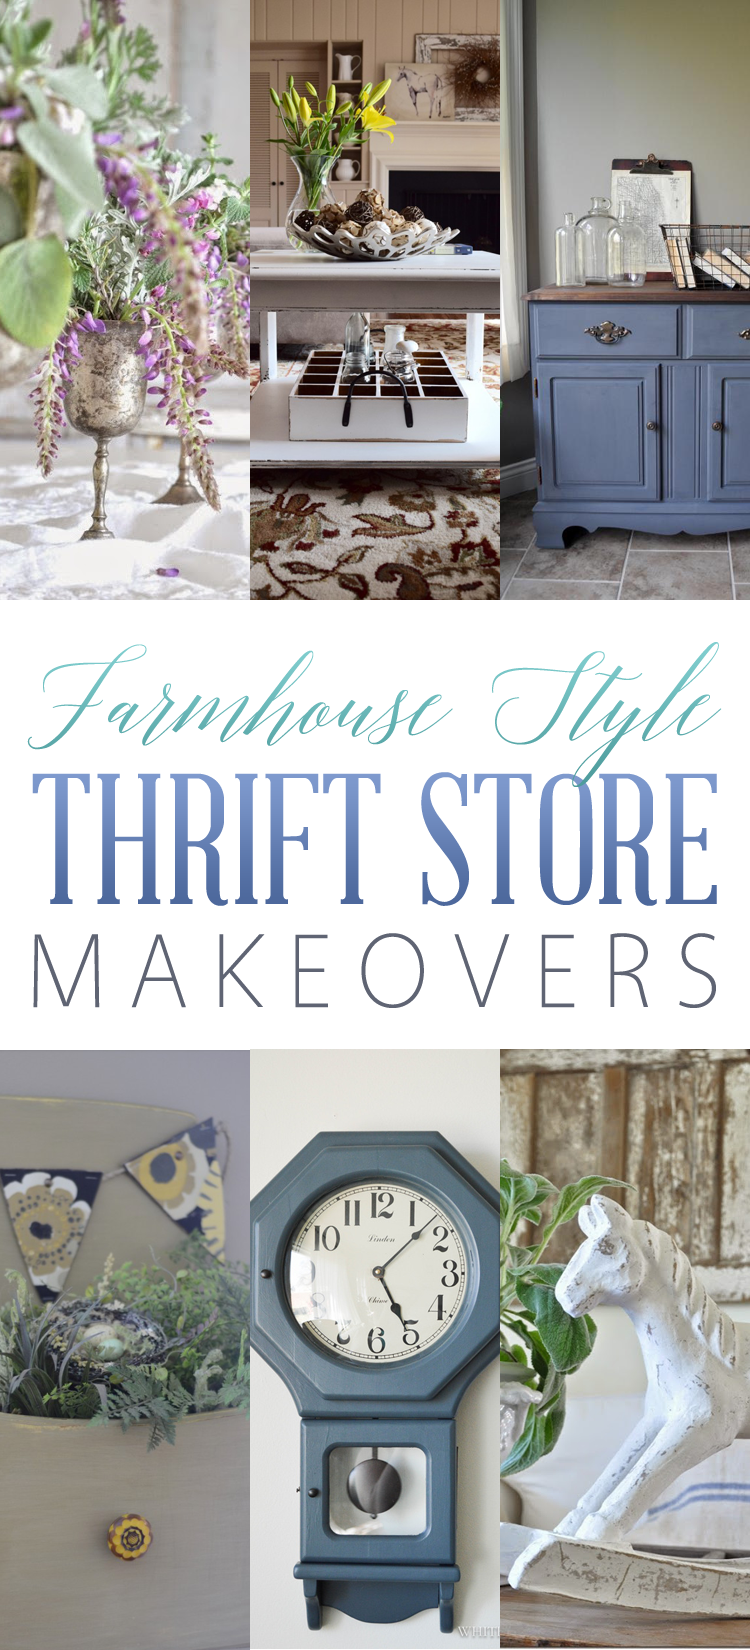 http://thecottagemarket.com/wp-content/uploads/2015/09/ThriftStore-TOWER-1.png